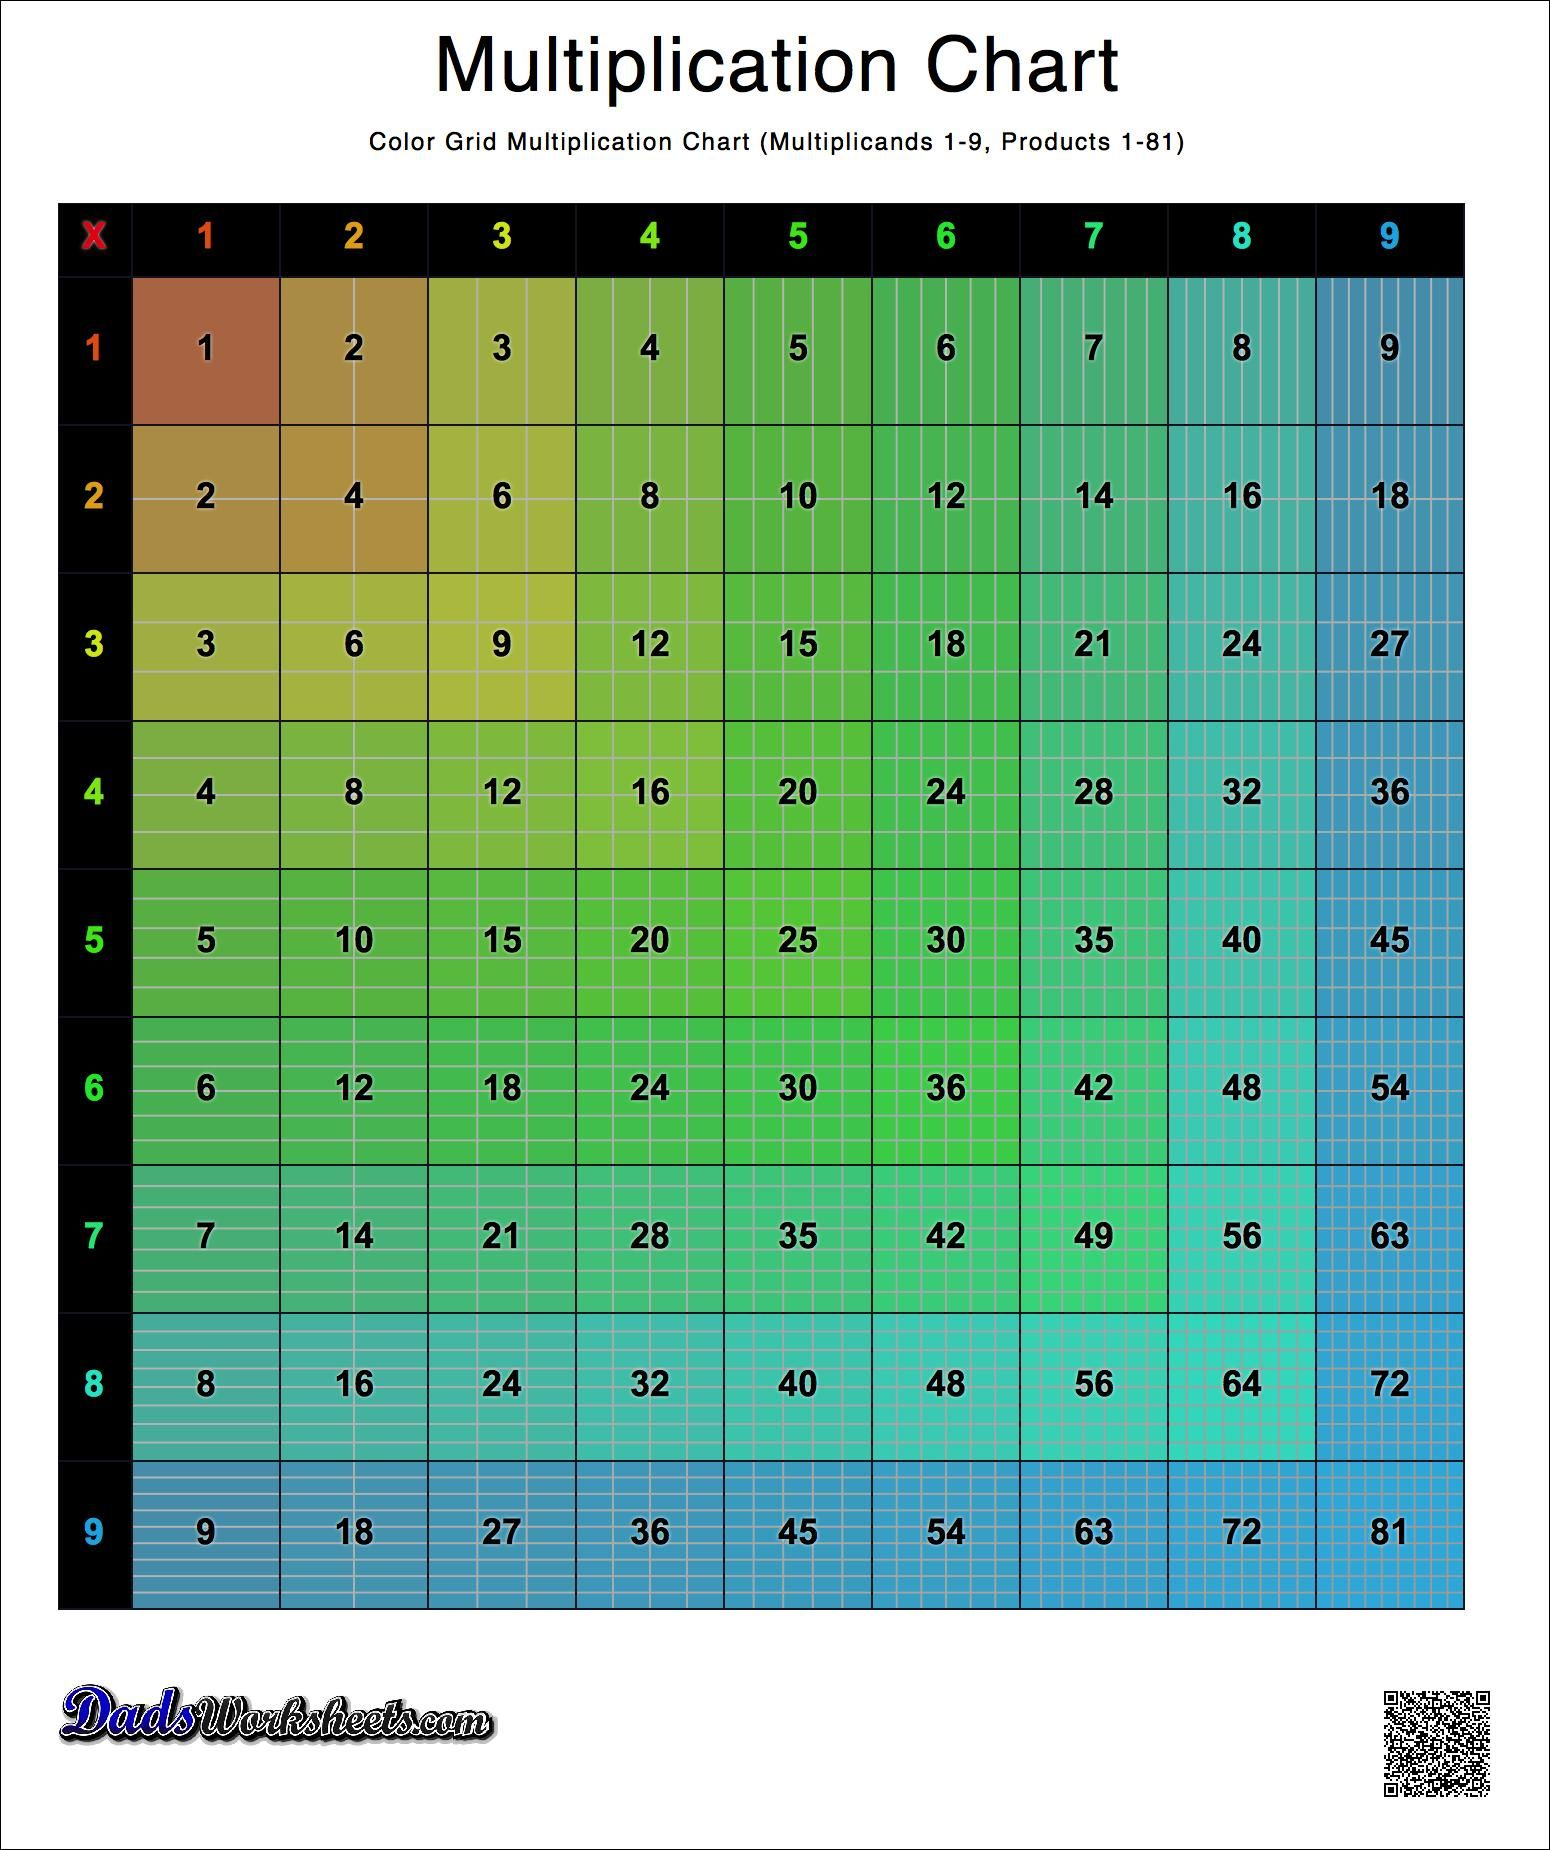 Colored Grid Multiplication Chart Versions With 1 9 1 10 1 12 And 1 15 Many Other Layouts